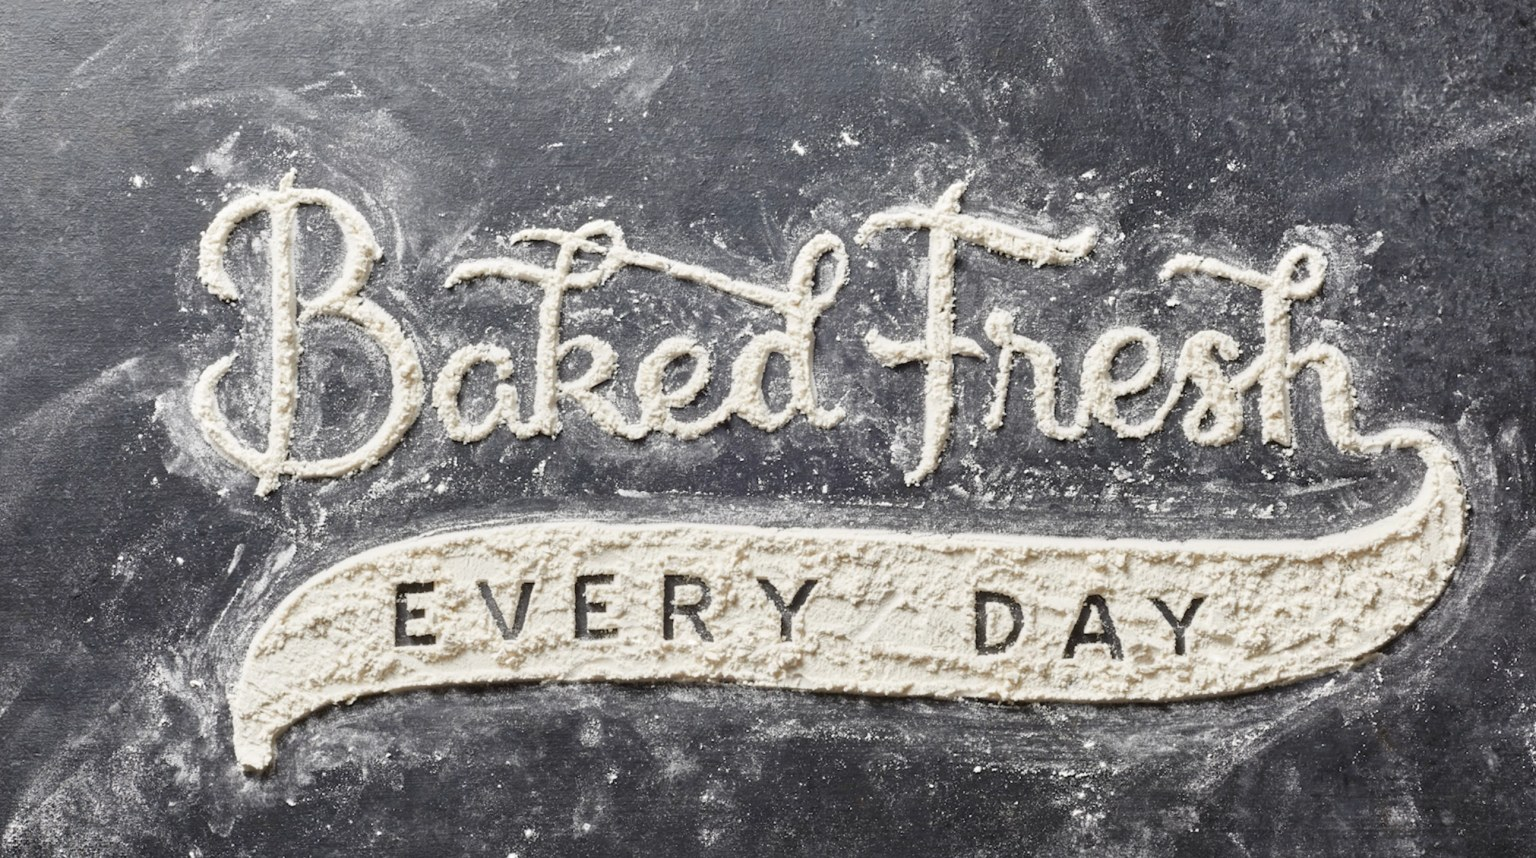 Publix - Baked Fresh Every Day